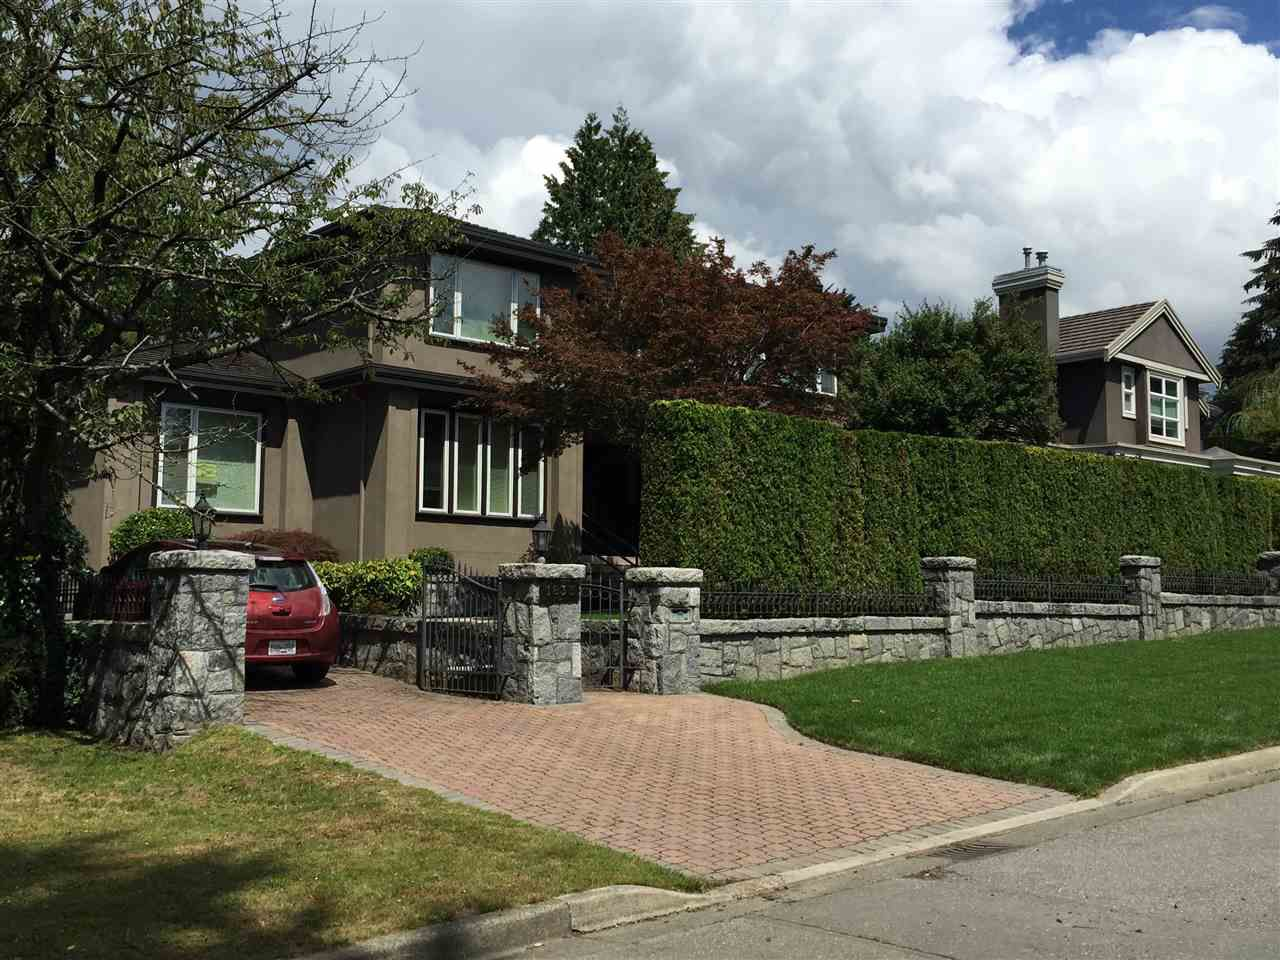 Main Photo: 1833 W 63RD Avenue in Vancouver: S.W. Marine House for sale (Vancouver West)  : MLS®# R2213789